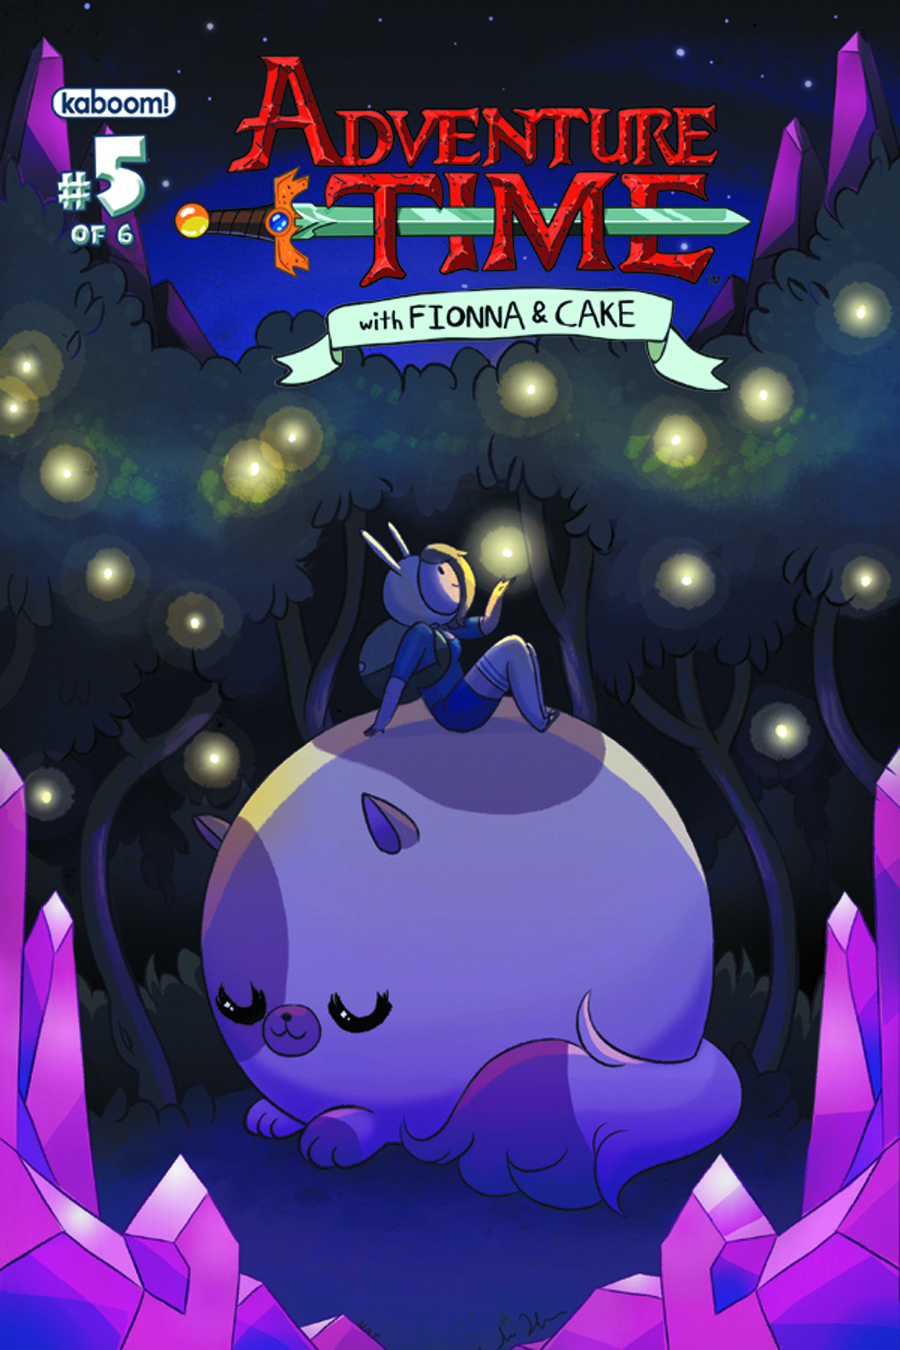 ADVENTURE TIME FIONNA & CAKE #5